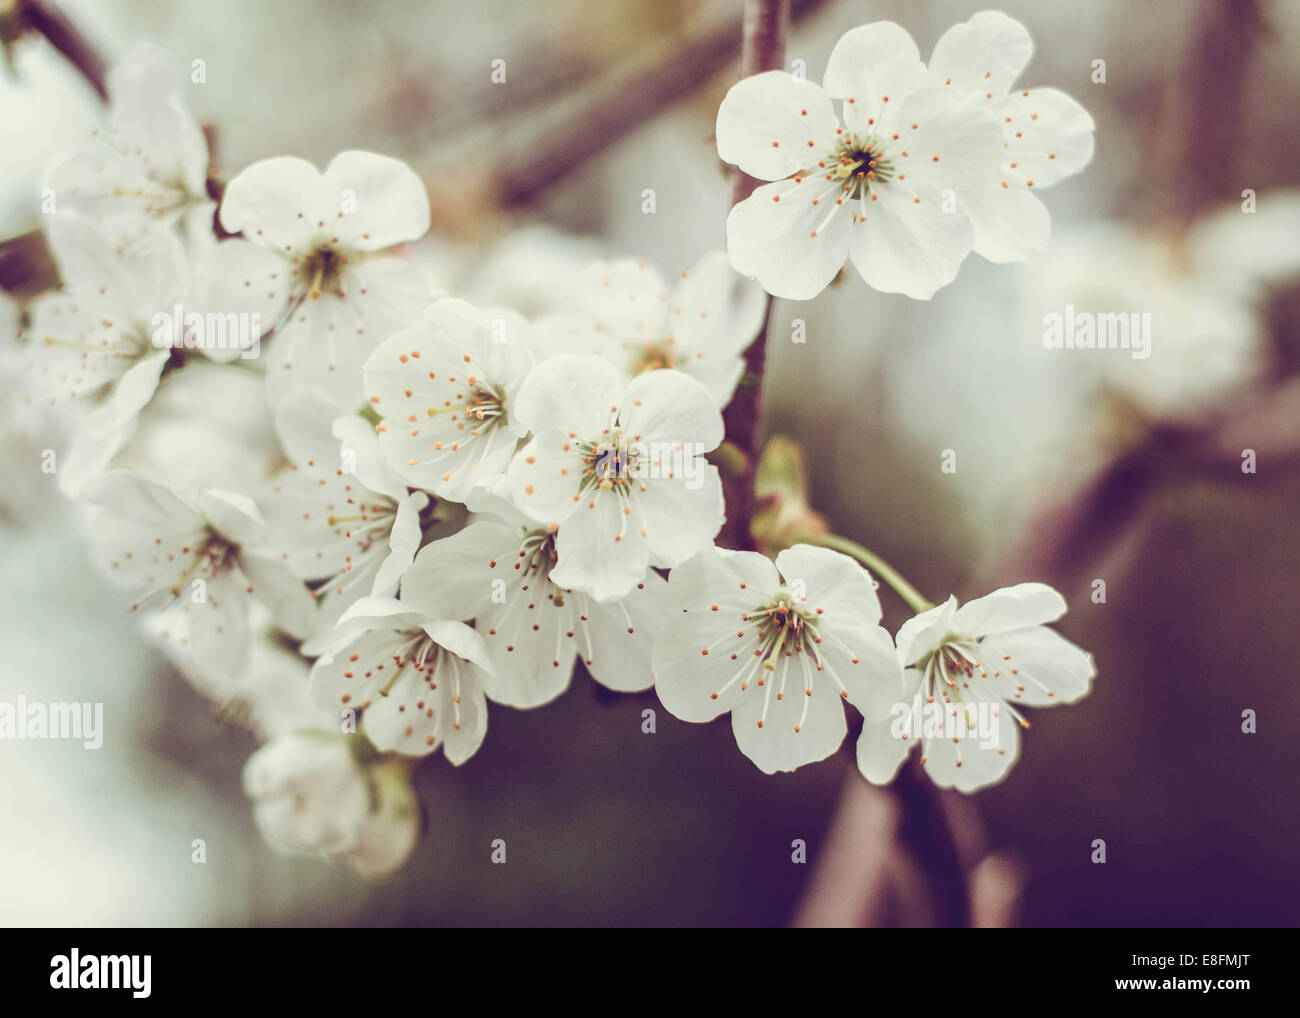 Close-up of Cherry Blossom flowers Photo Stock